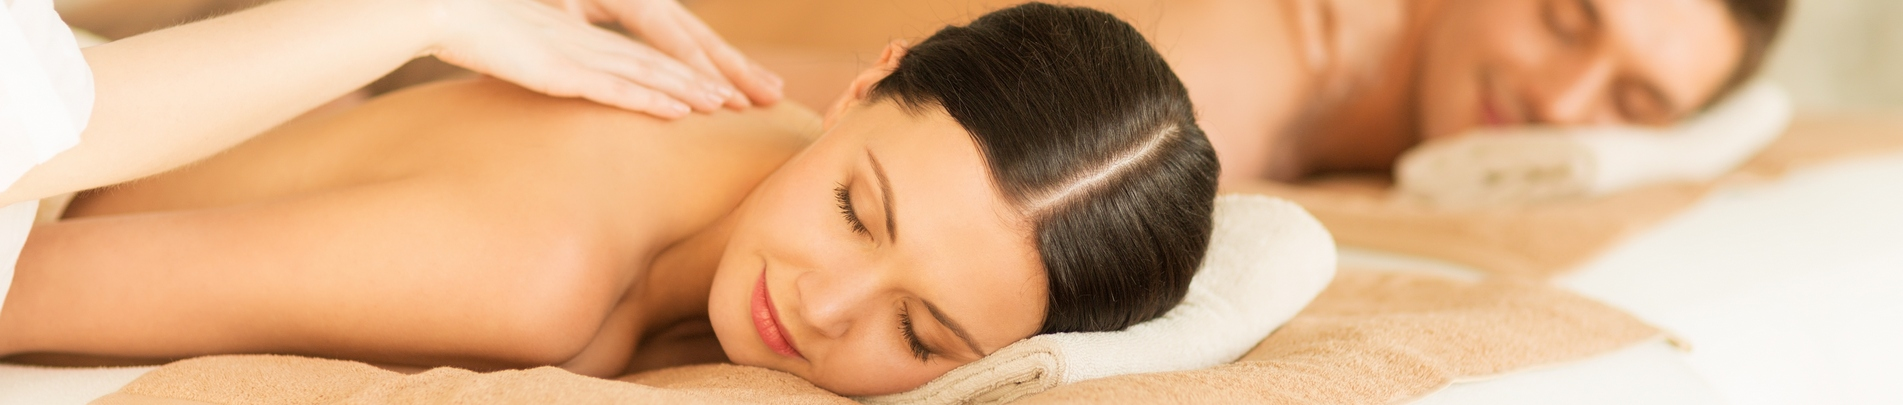 Meditate Group Offers a Wide Range of Massage Therapies and Relaxation Procedures.